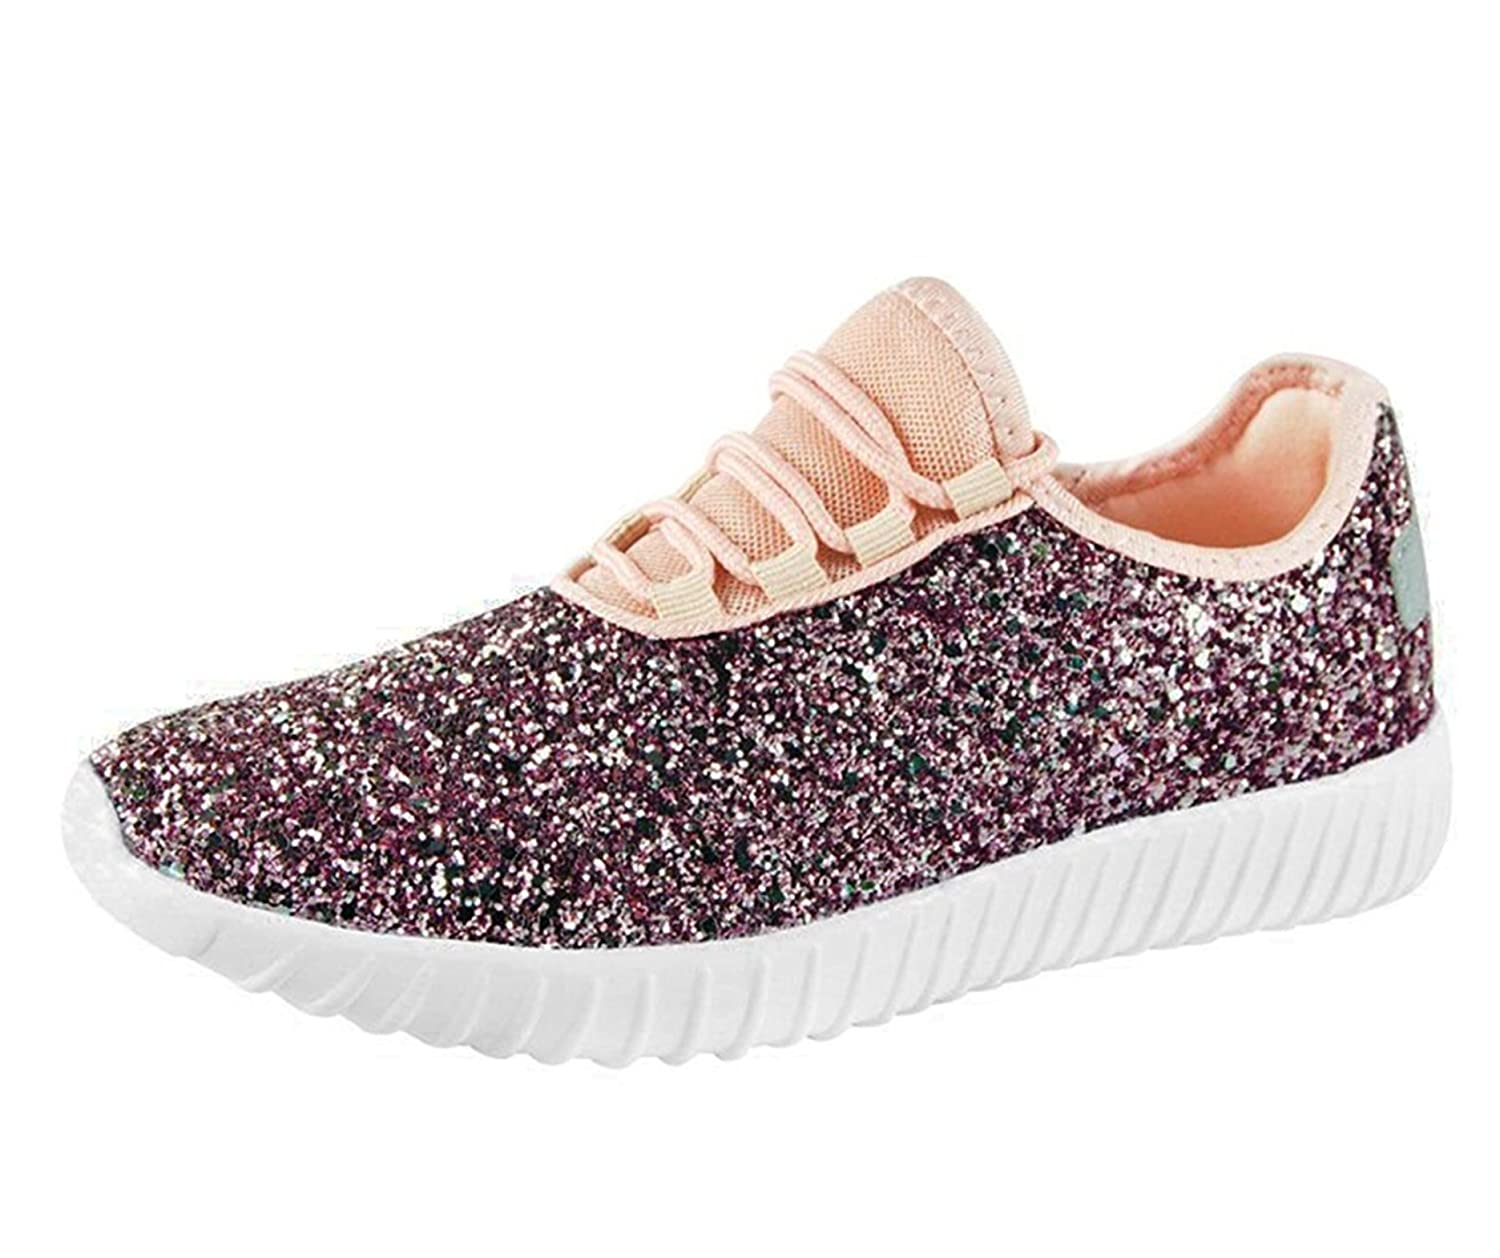 SF Forever Link Remy-18 Women's Jogger Sneaker-Lightweight Glitter Quilted Lace up Shoes New B079YF2ZWN 7 B(M) US|Pink-18